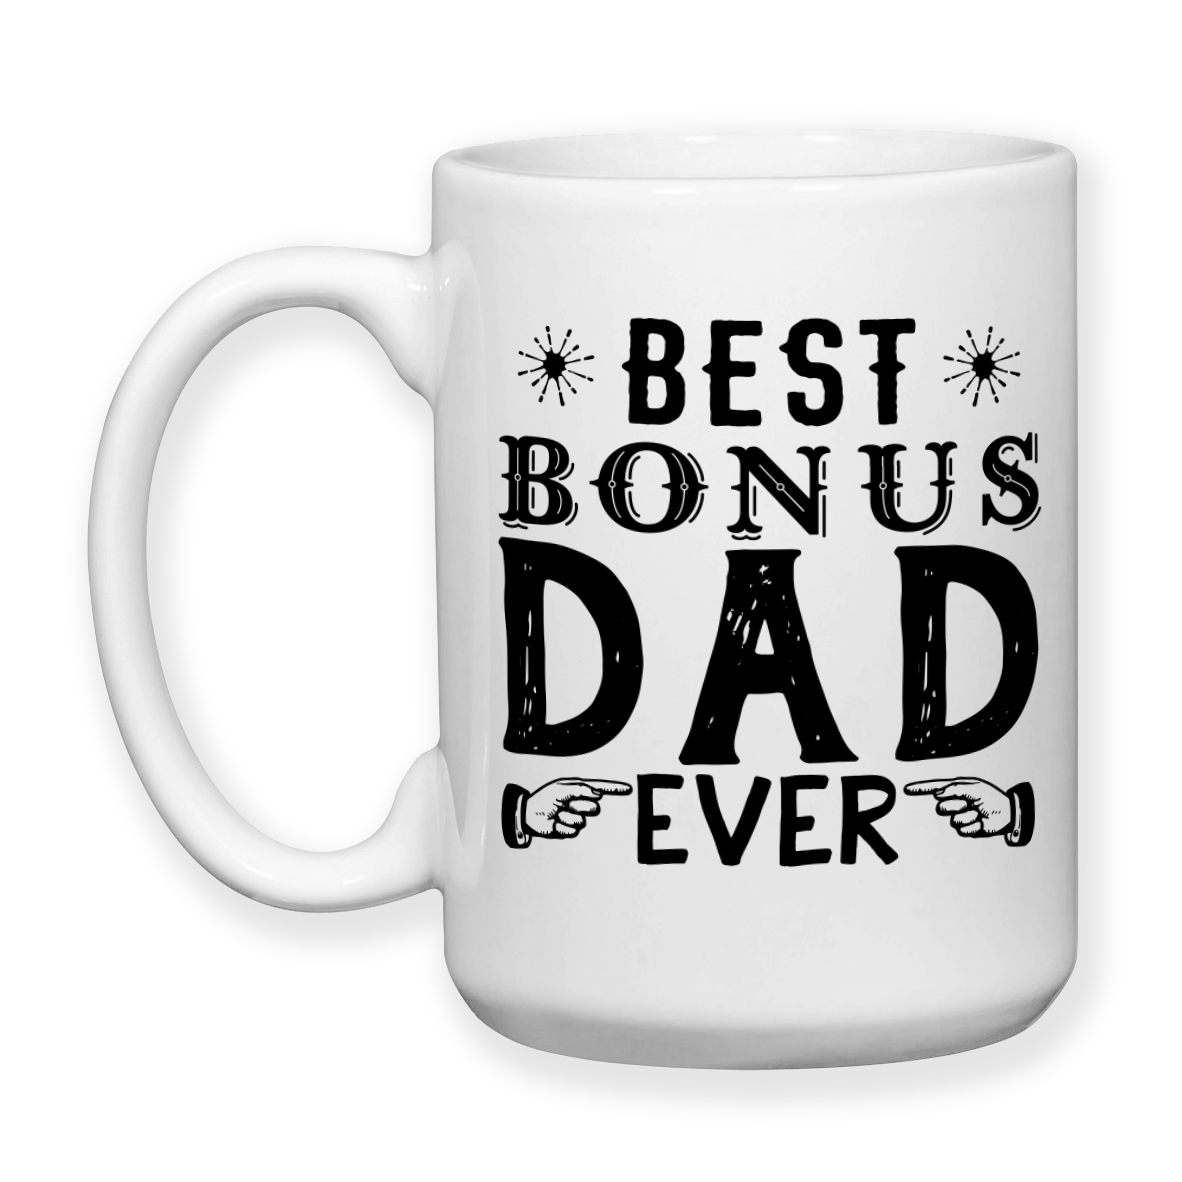 3ec7a4c33 Best Bonus Dad Ever, Step Father, Step Dad, Father's Day, Step Father  Birthday, Step Dad Birthday, Bonus Dad, 15oz Coffee Mug